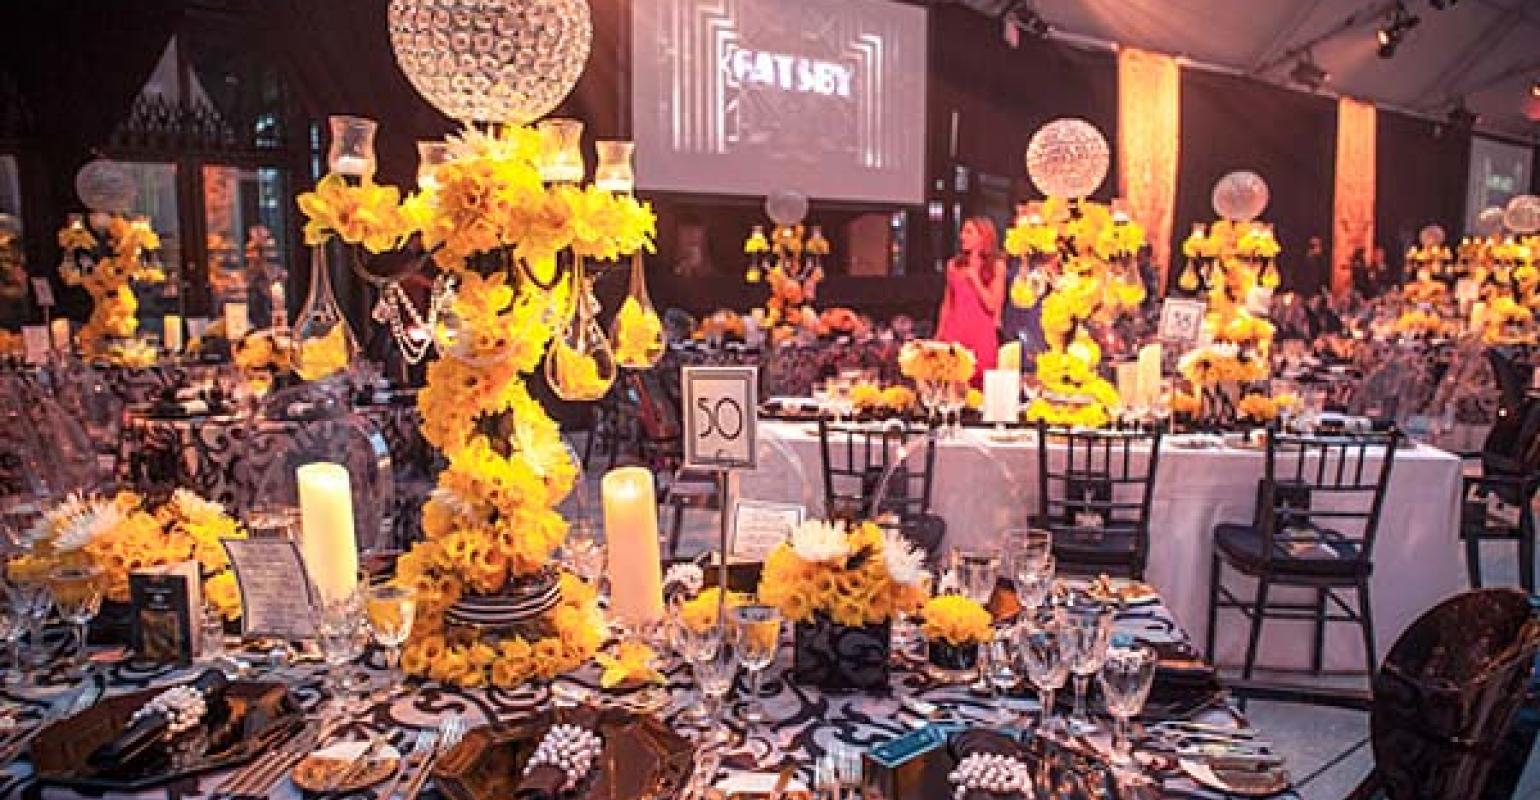 Gatsby Gala: Alison Silcoff Events Gins Up a 'Great Gatsby